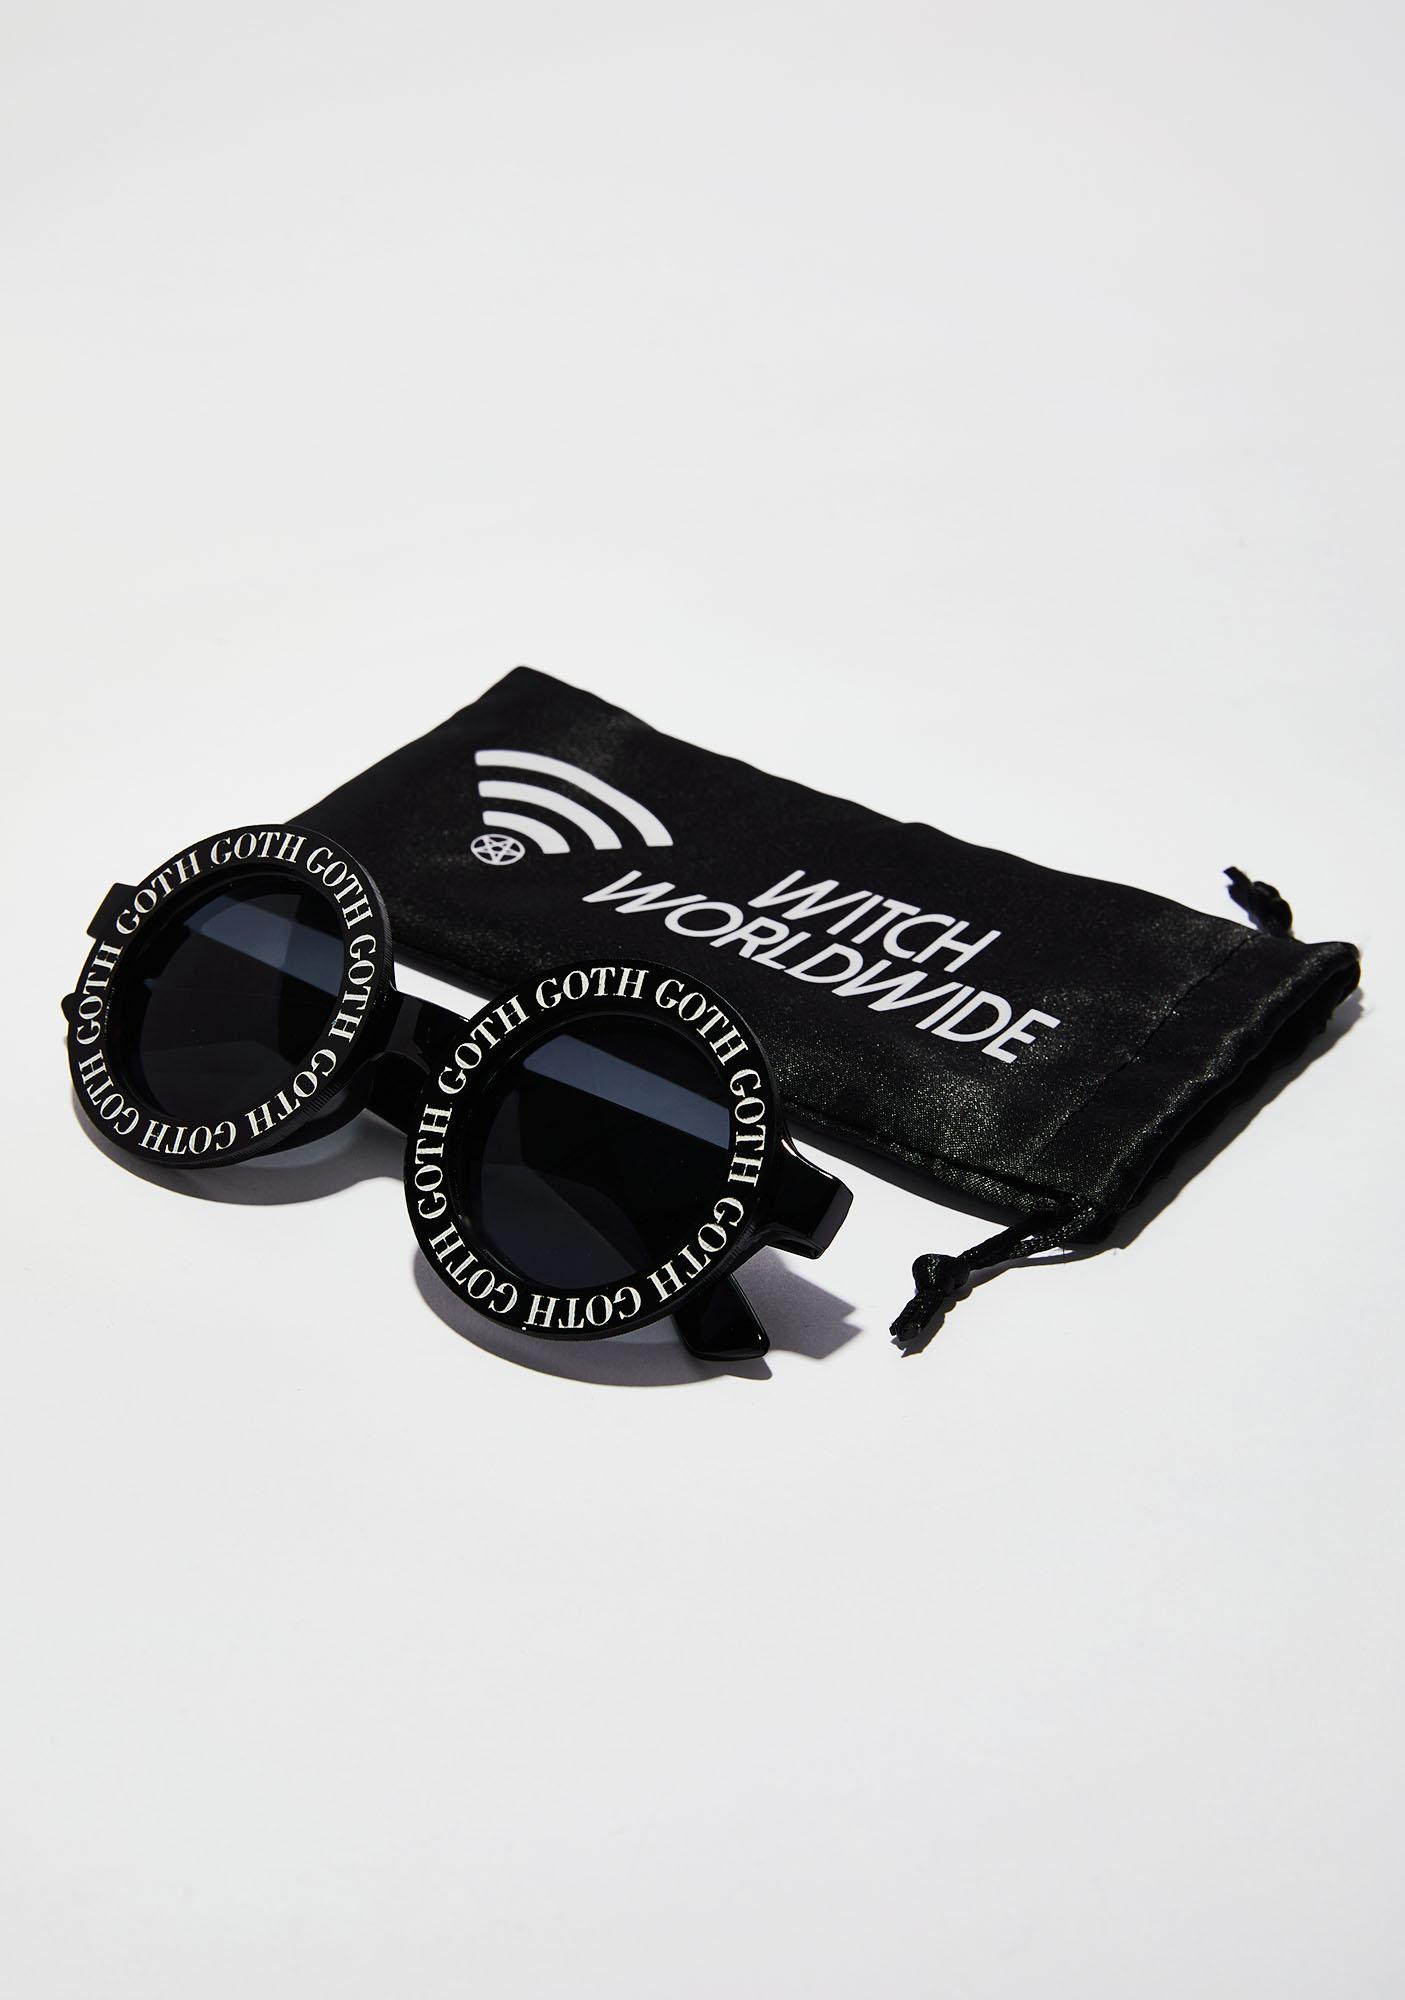 Witch Worldwide Goth Goth Sunglasses